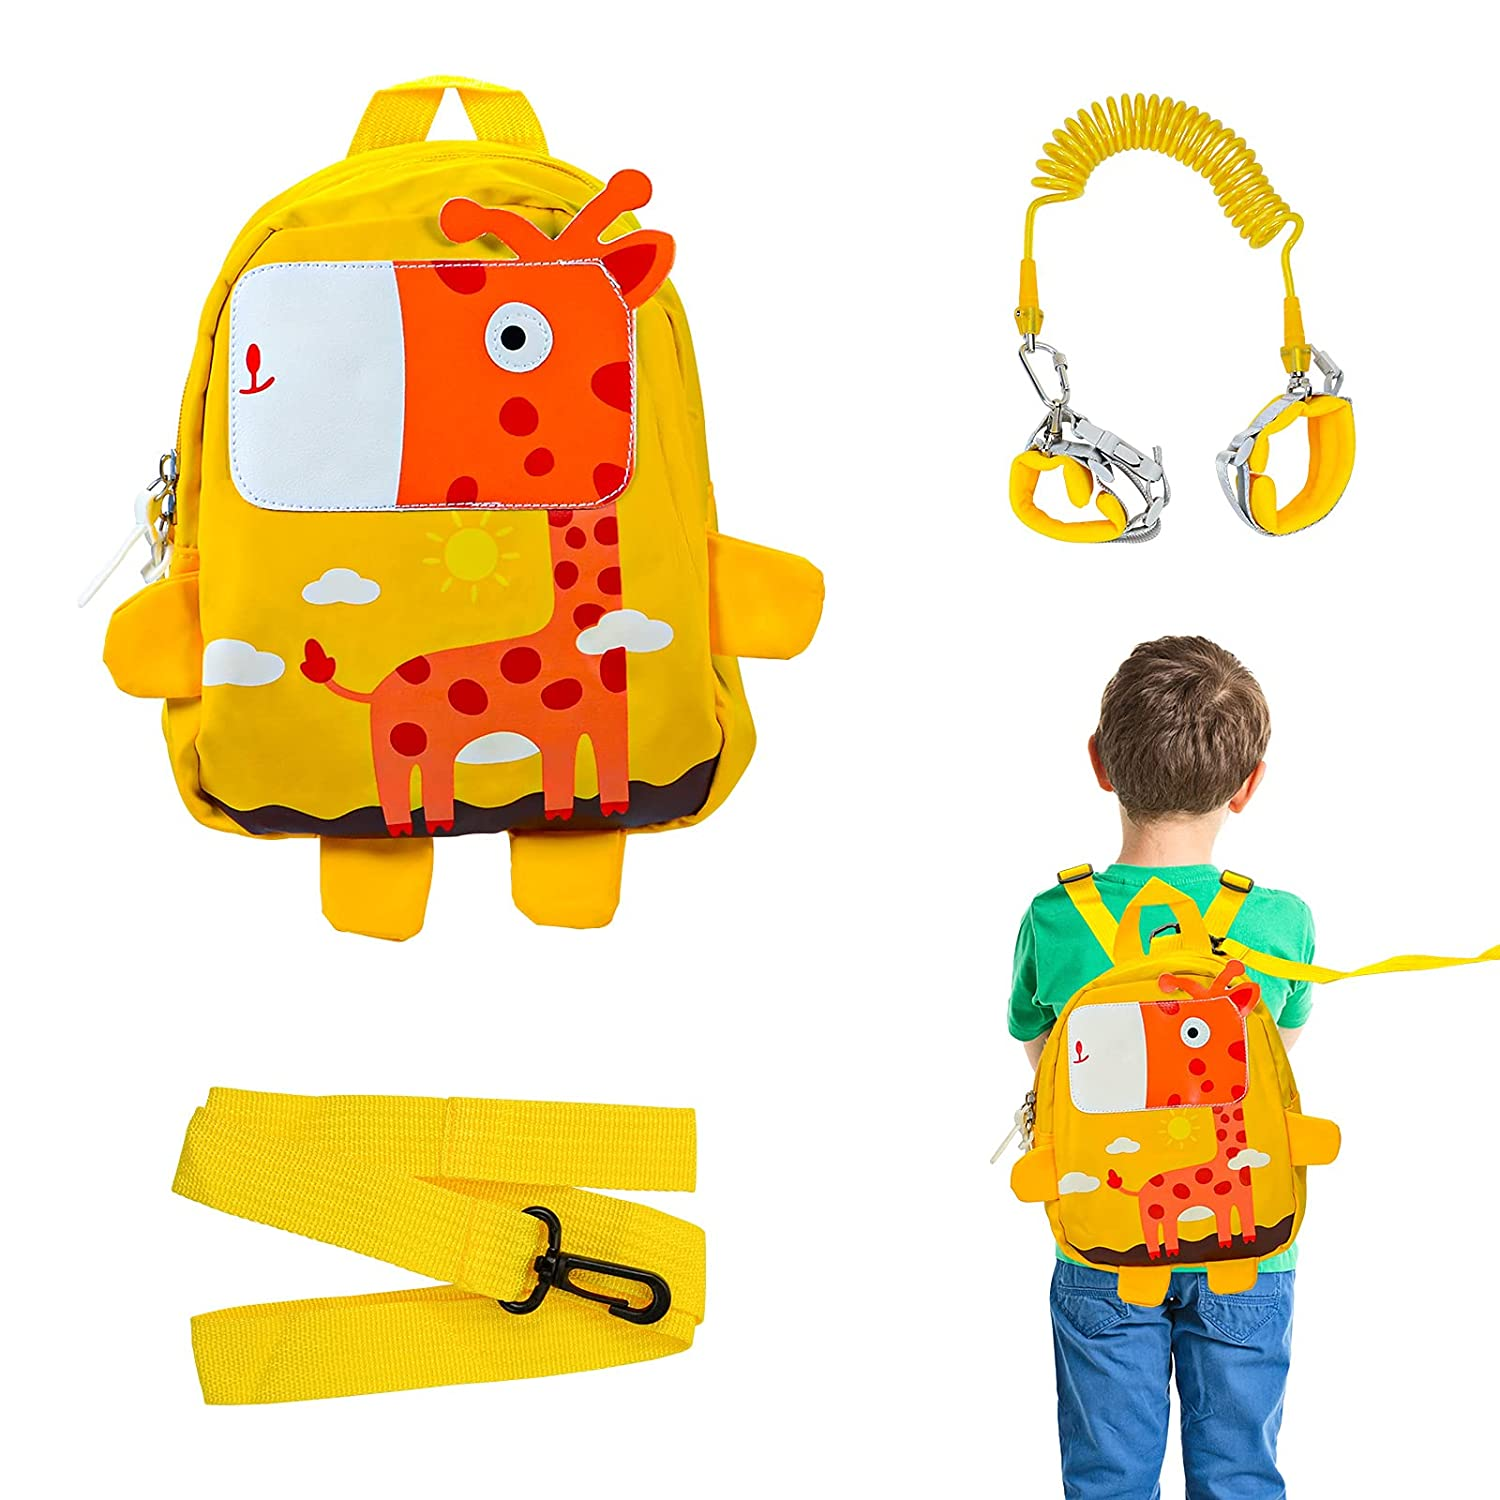 3PCS Toddlers Child Leash Backpack Set, Anti Lost Wrist Link with Key Lock, Baby leashes for Toddlers, Kids Walking Wristband Safety Harness Leash and Cute Giraffe Bag for Walking Baby, Boy, Girl